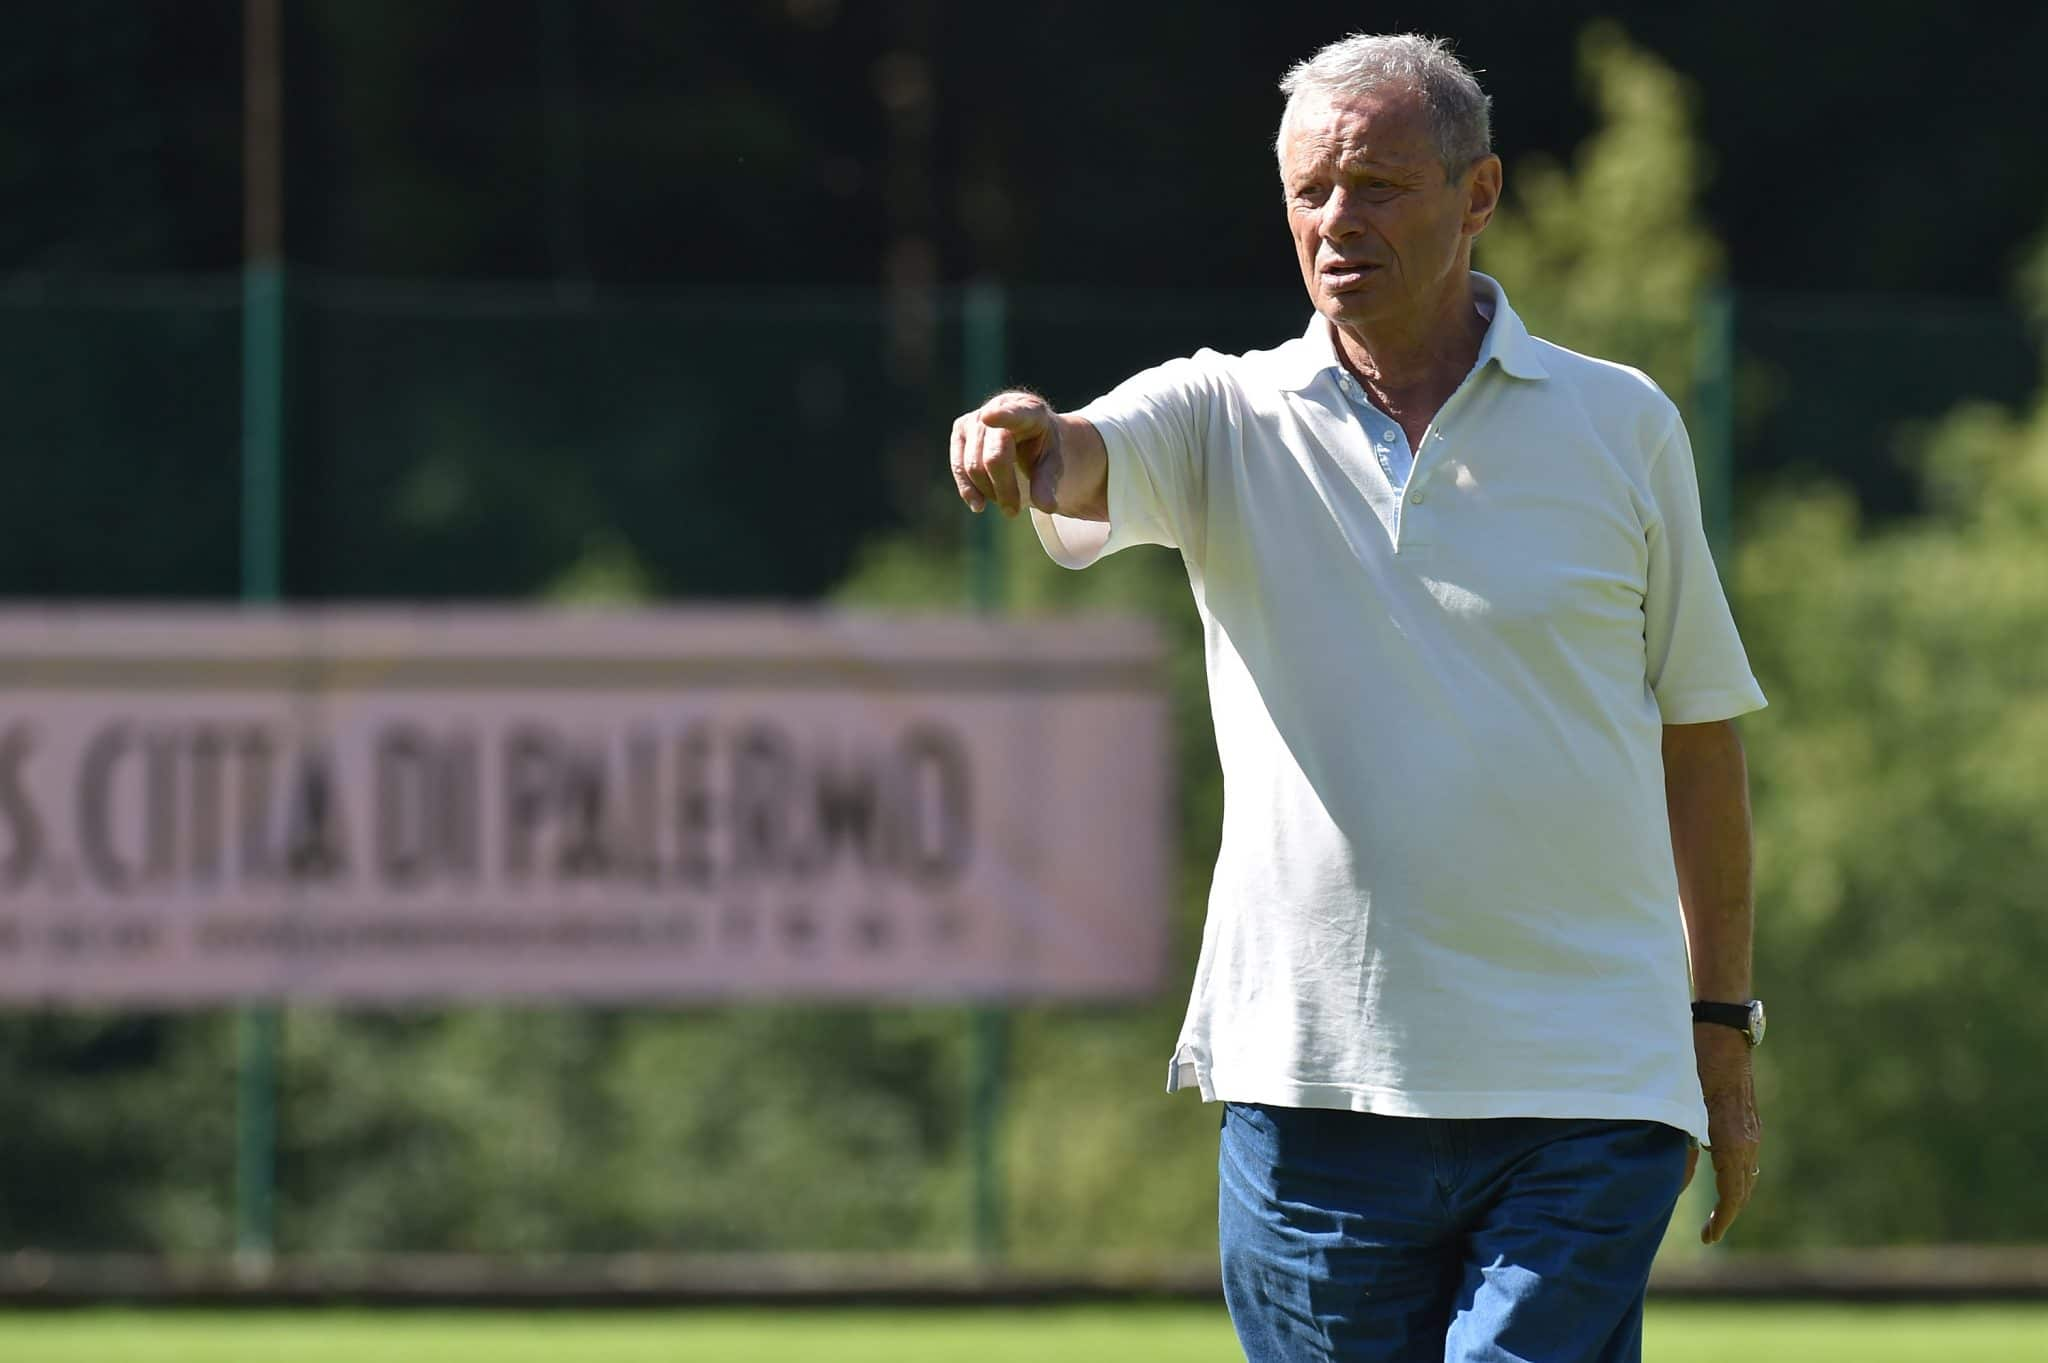 BELLUNO, ITALY - JULY 25:  Palermo owner Maurizio Zamparini looks on during a training session at the US Citta' di Palermo training camp on July 25, 2018 in Belluno, Italy.  (Photo by Tullio M. Puglia/Getty Images)